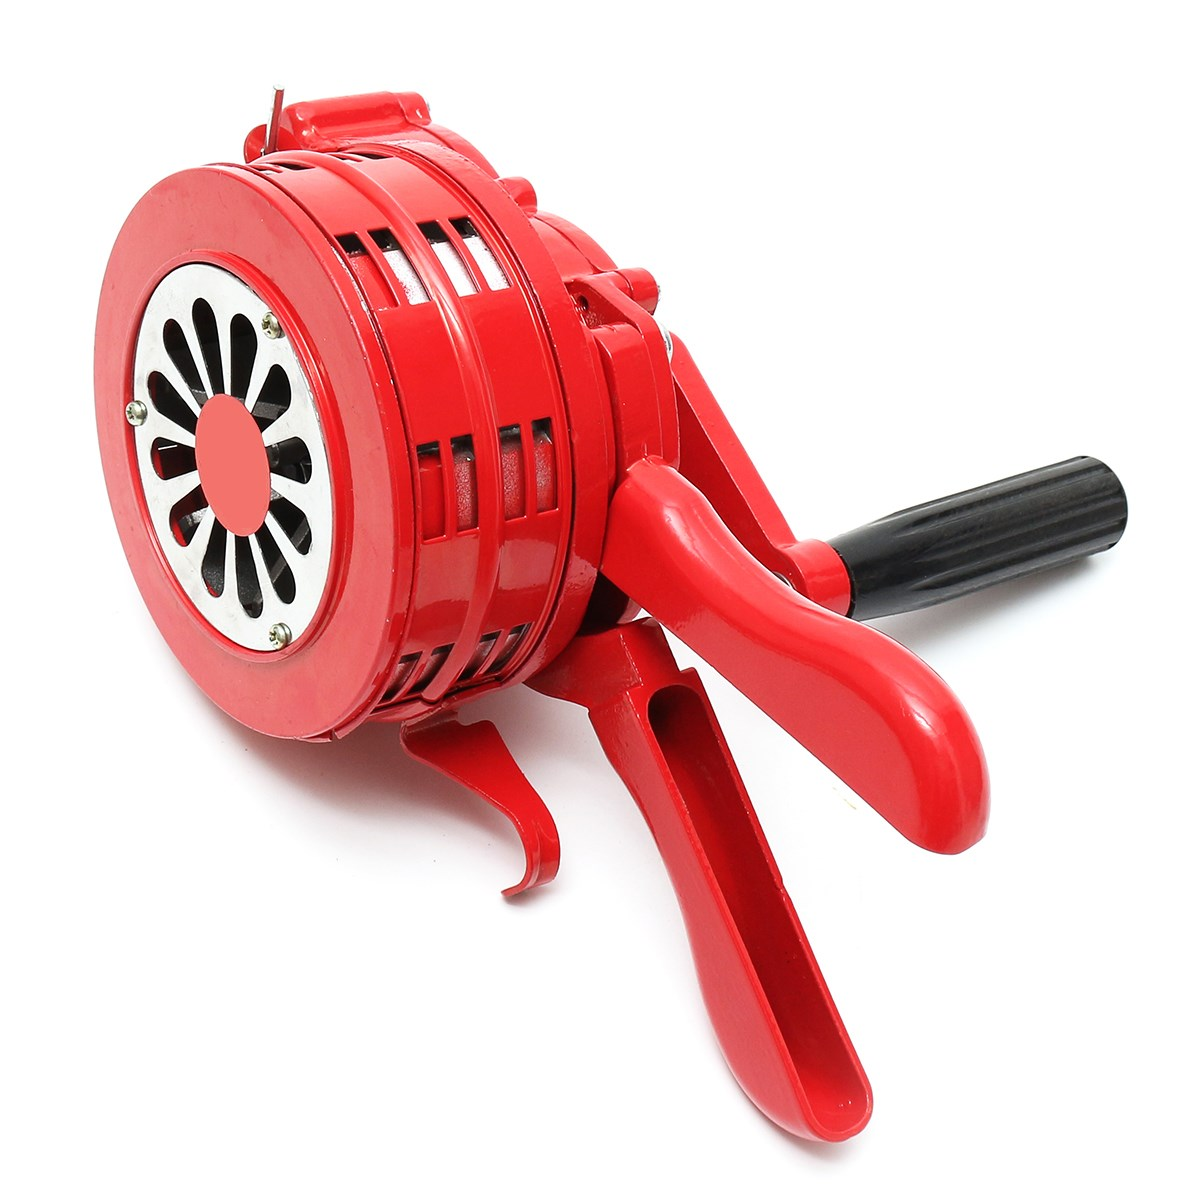 Hot Sale 4.5 Red Aluminium Alloy Handheld Manual Operated Security Alarm Air Raid Siren Portable Safety Alarm Siren Red personal guard safety security siren alarm with led flashlight white 2 cr2032